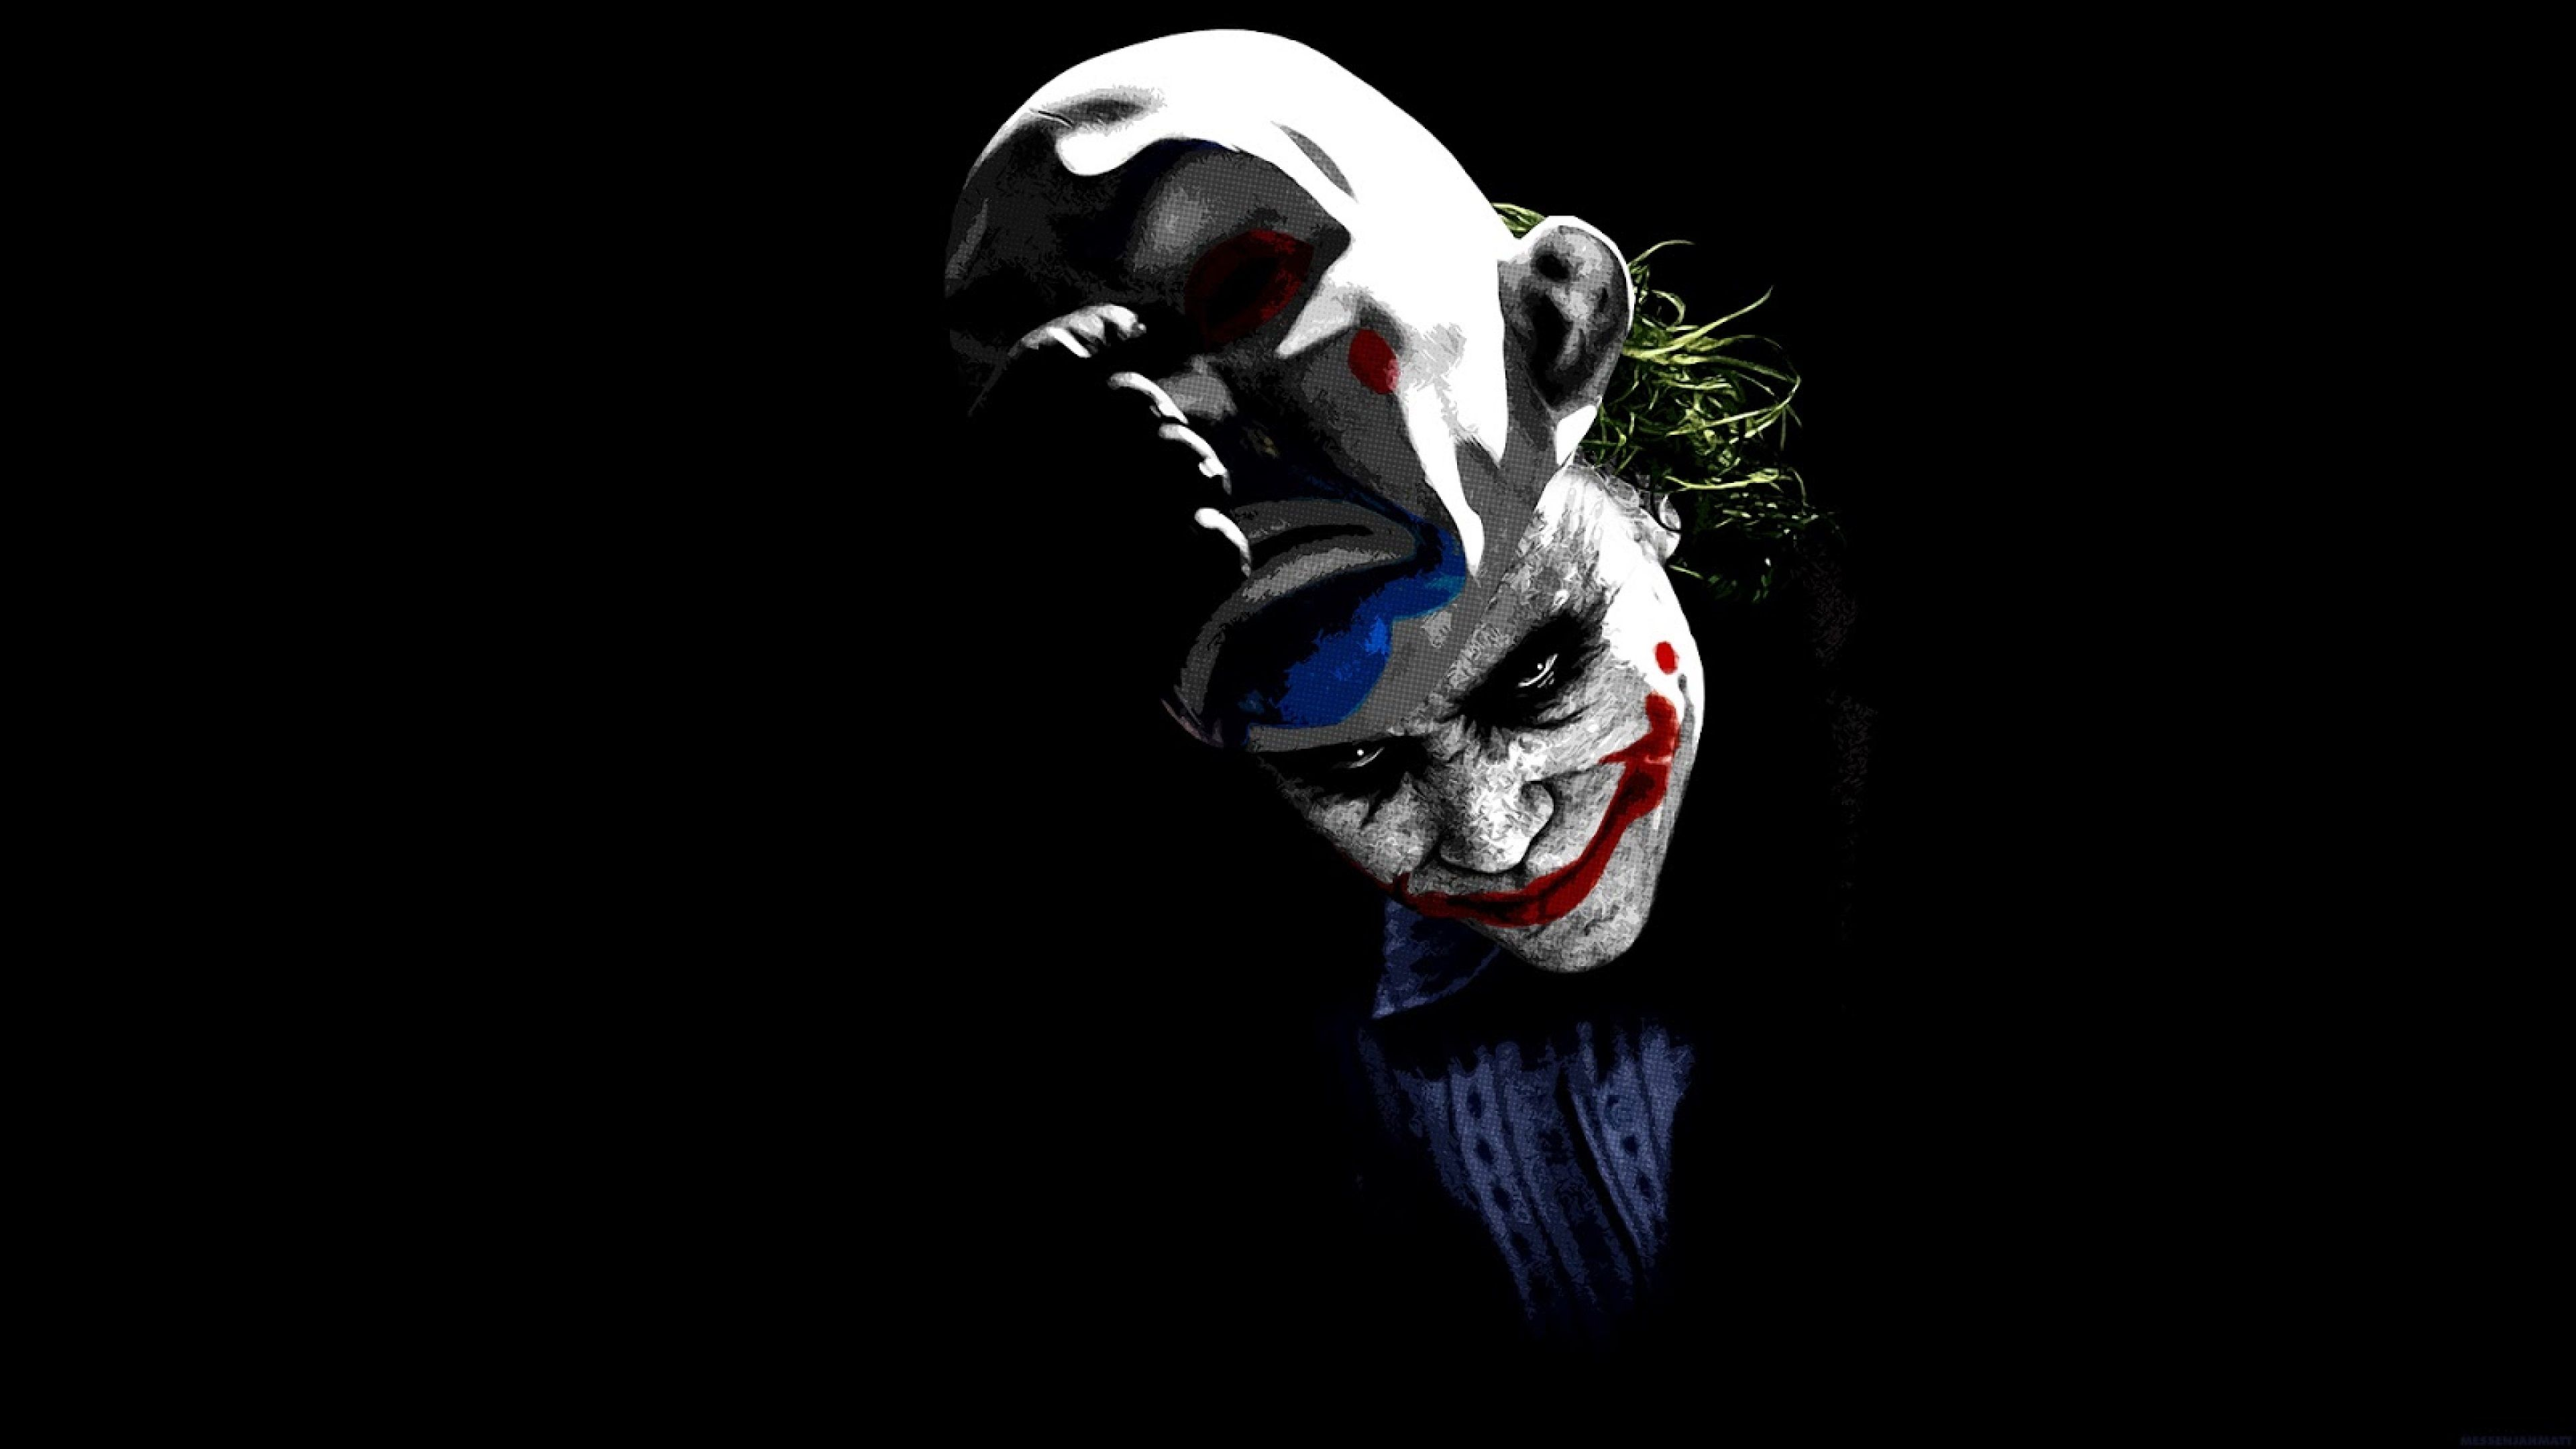 3840x2160 Joker 4k Pc Desktop Wallpaper Hd With Images Joker